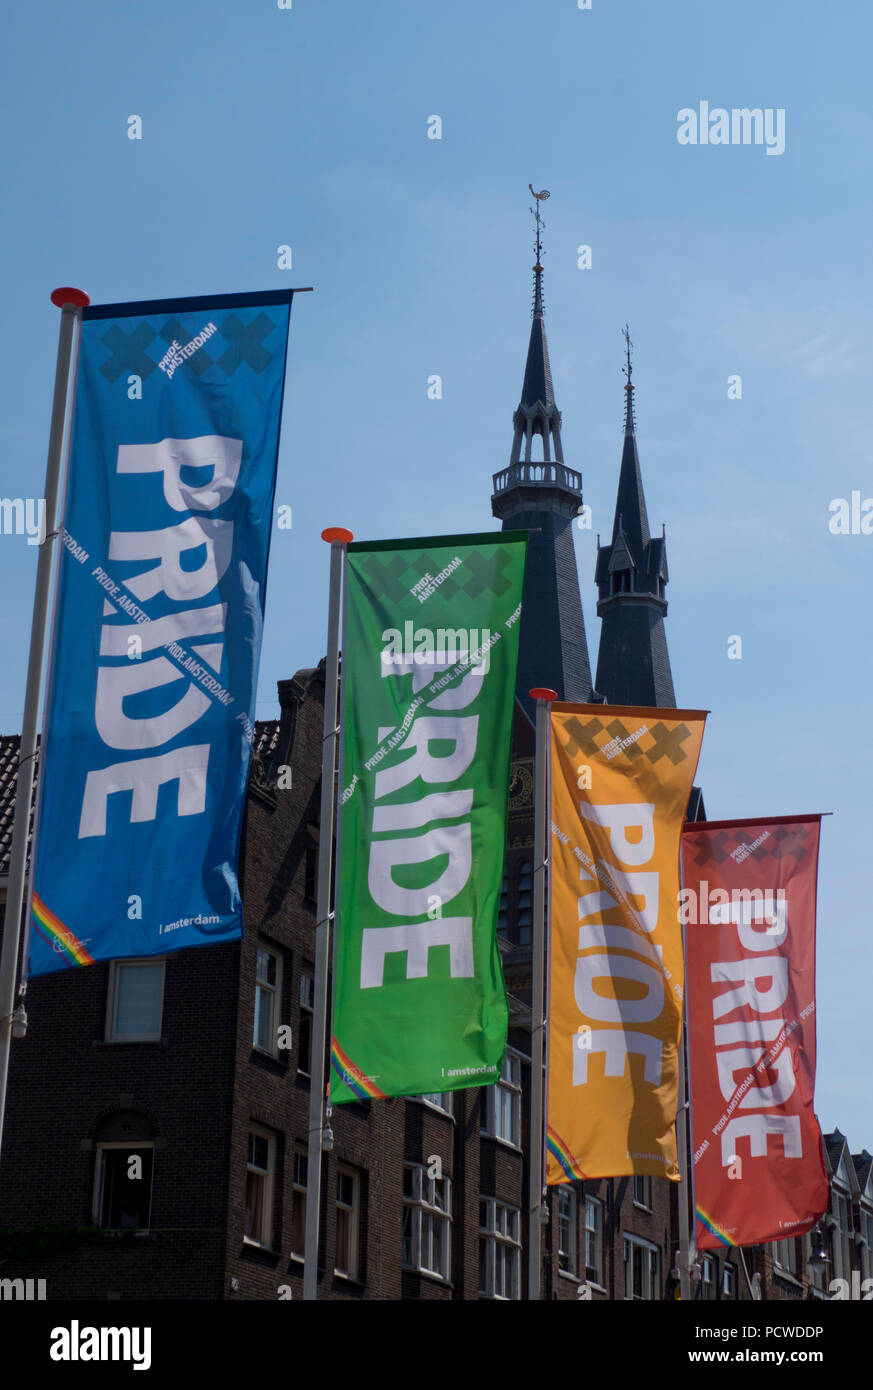 and celebrate pride and culture with the gay pride flag